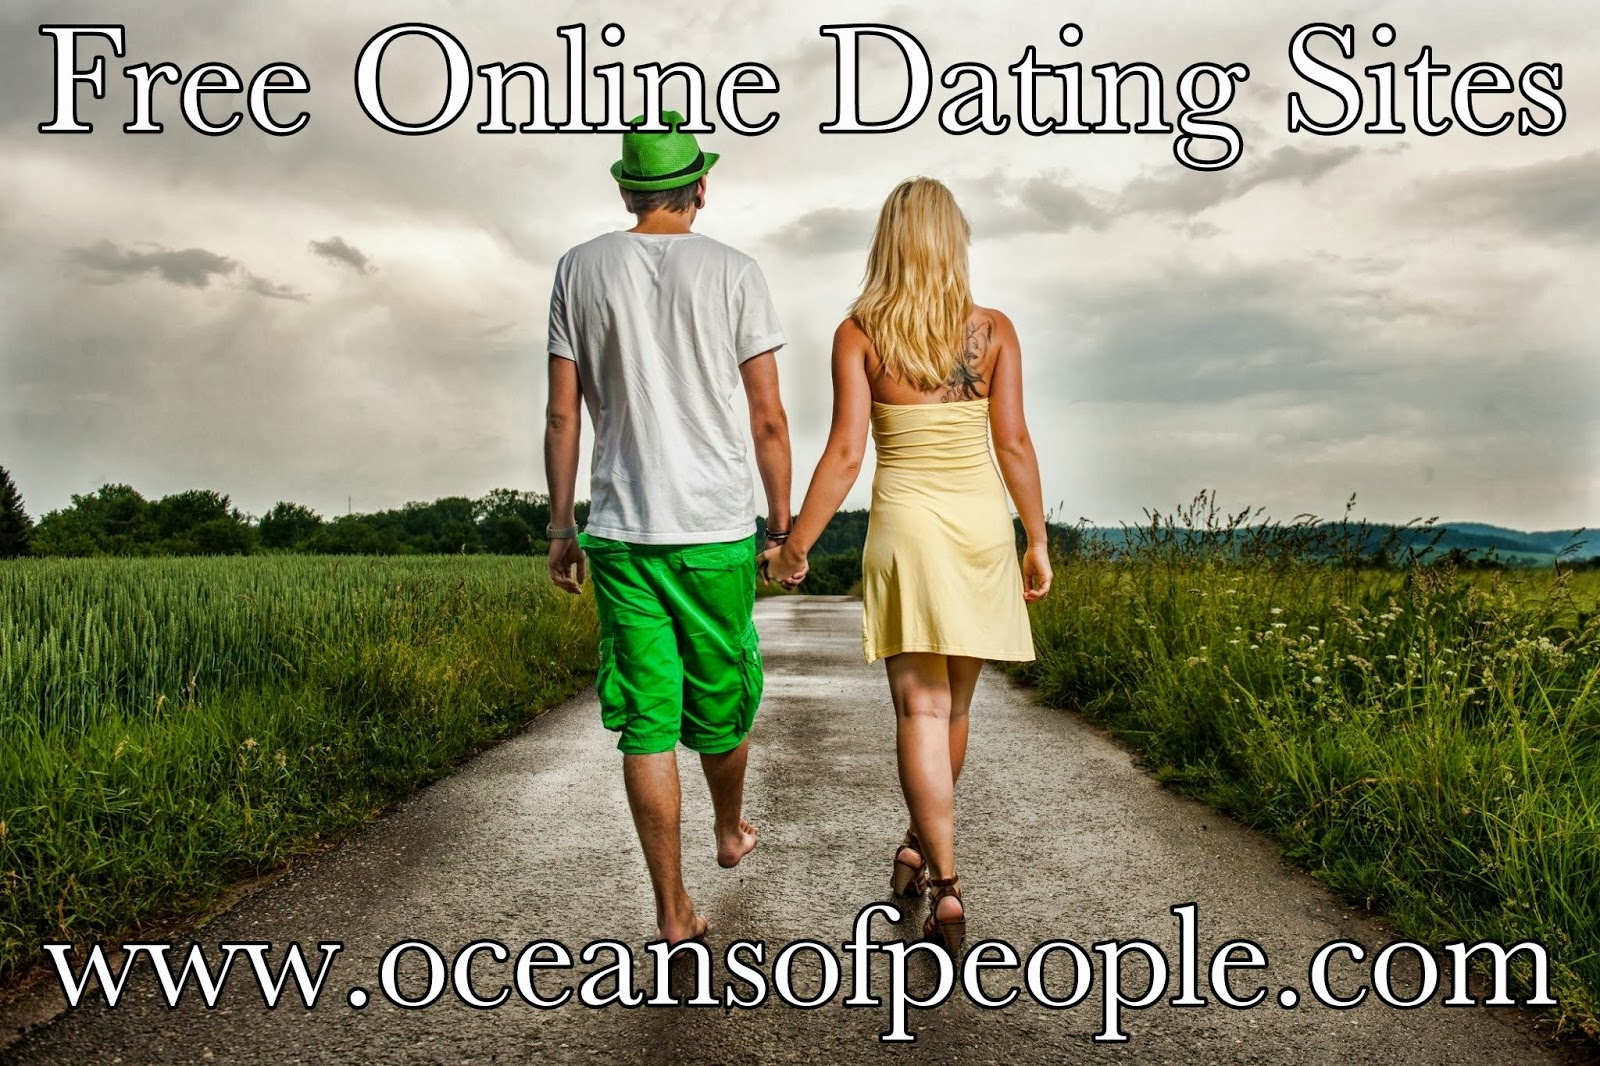 Free online dating sites cowboys